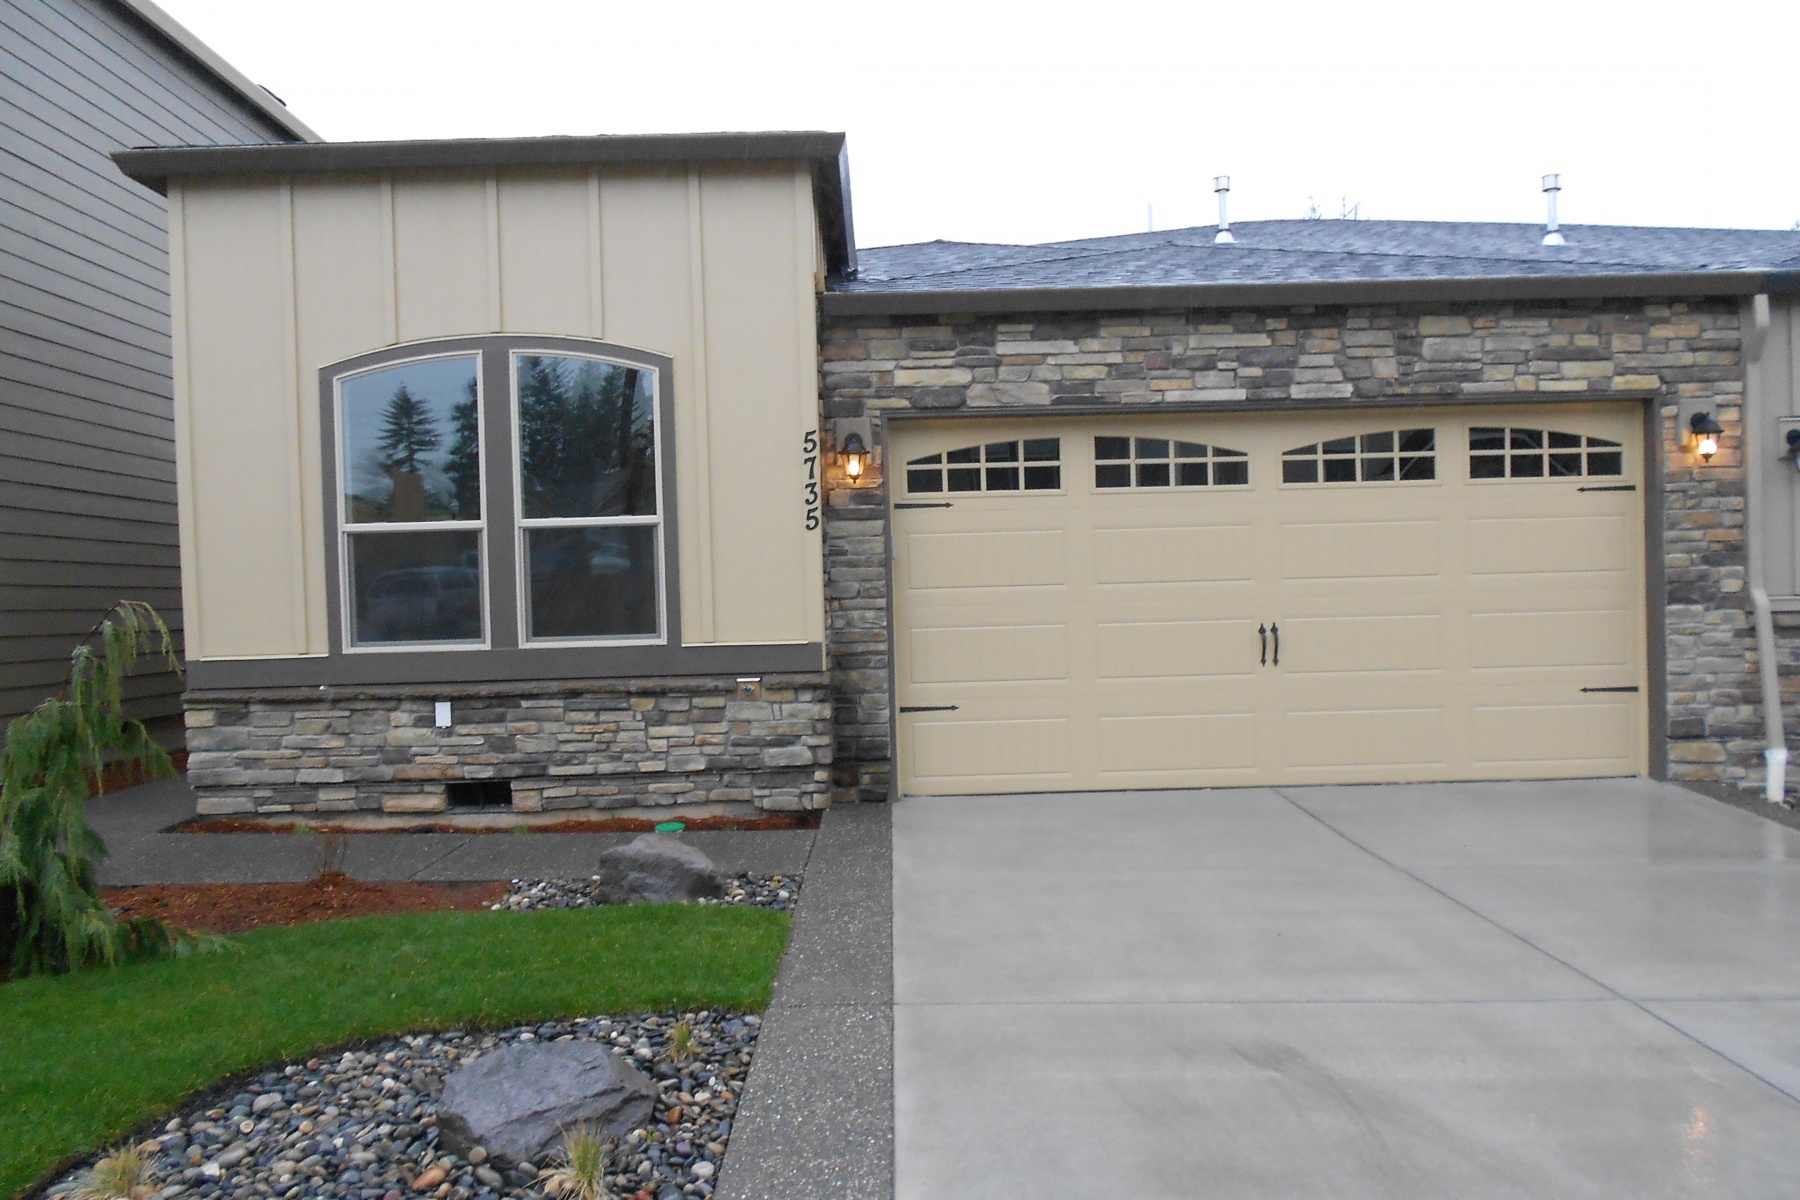 Single Family Home for Sale at Brand New 1 Level!! 5735 NW 26TH Ave Camas, Washington 98607 United States